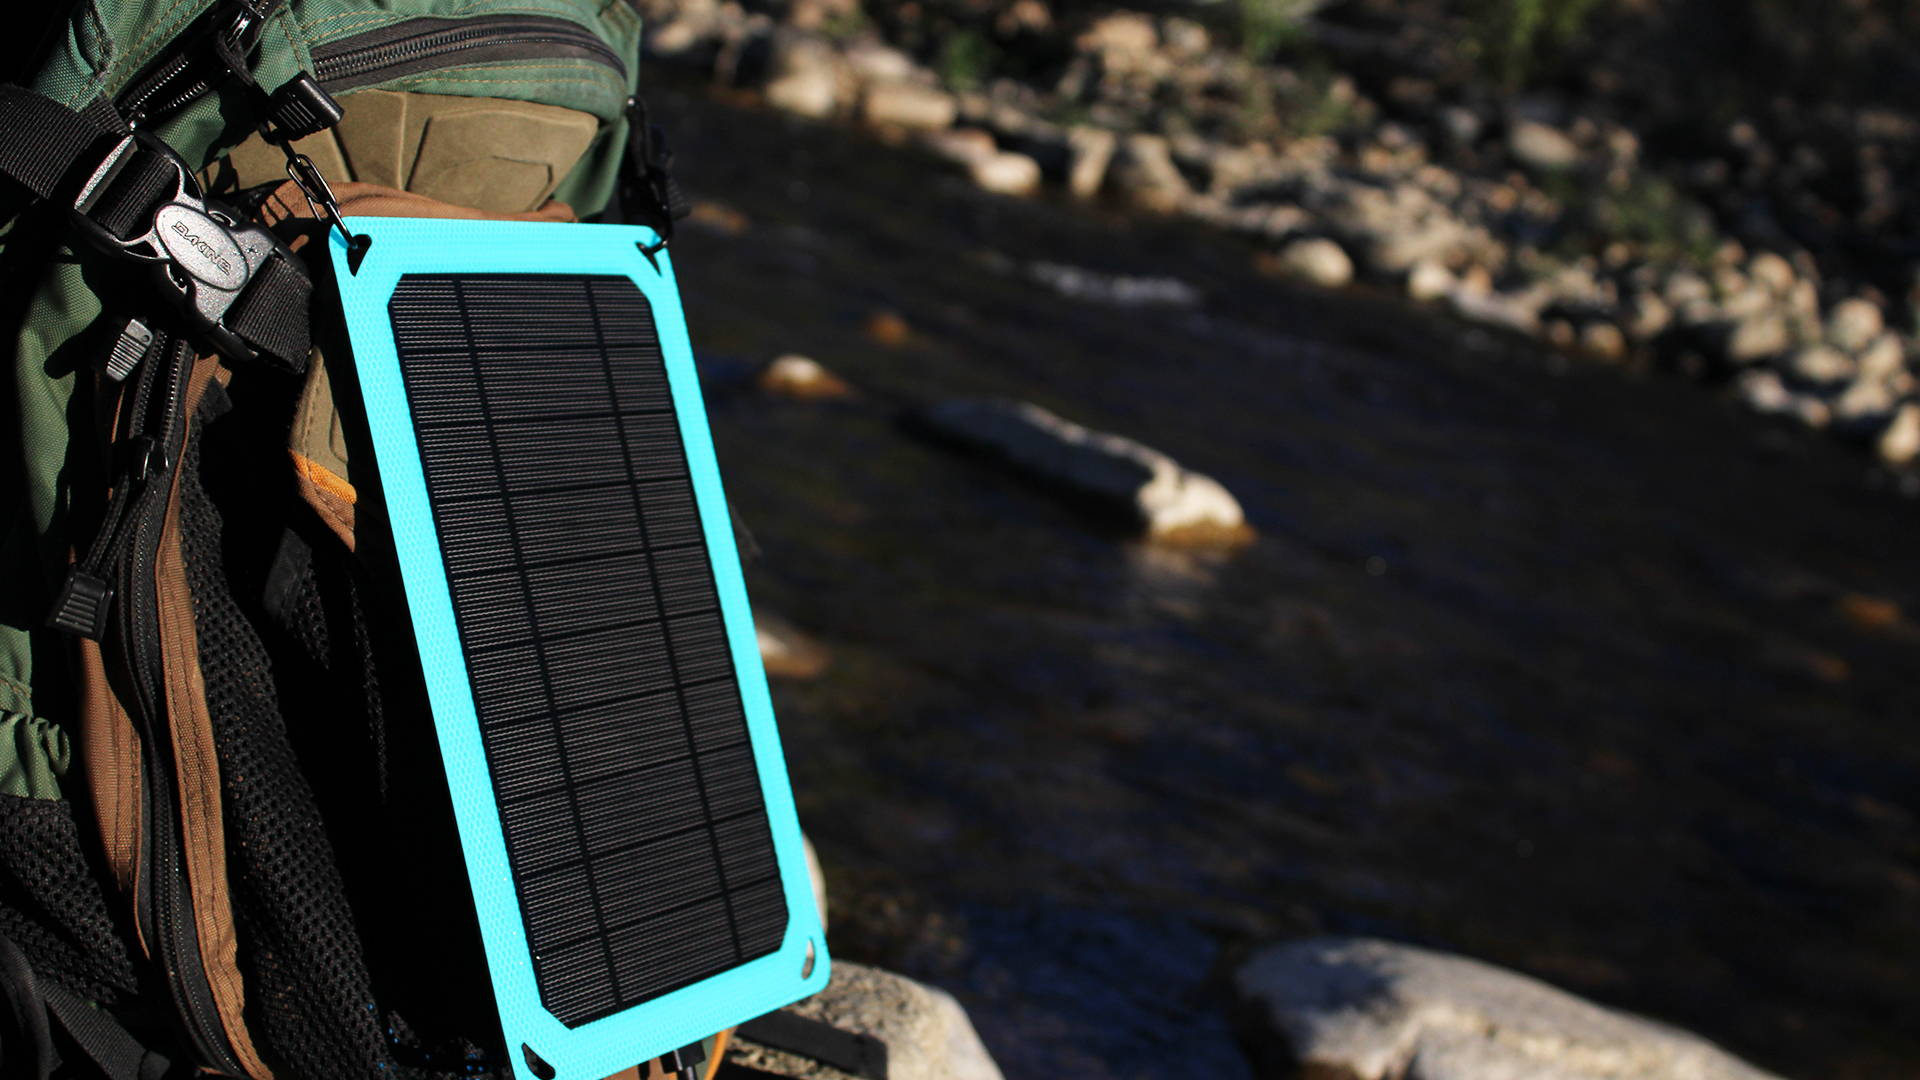 Voltzy Solar charging in the sunlight.